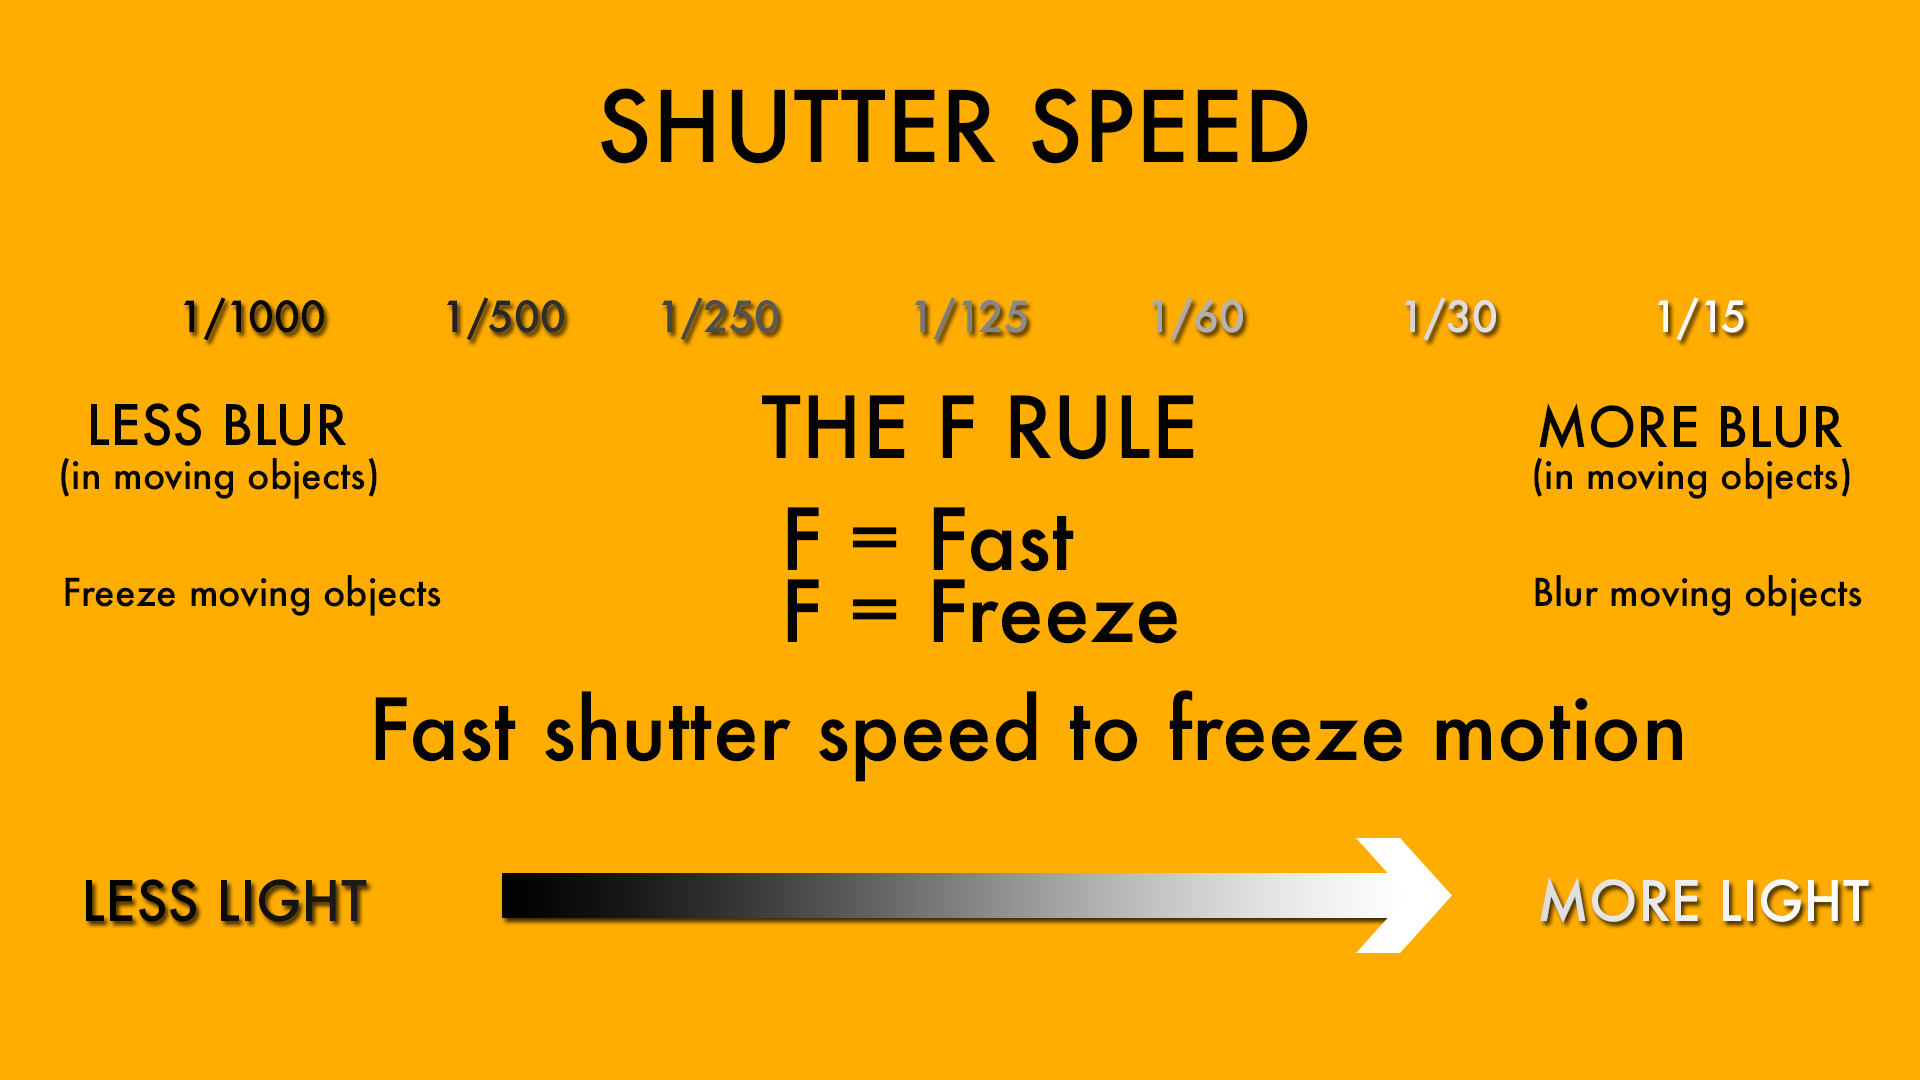 shutter speed photography definition